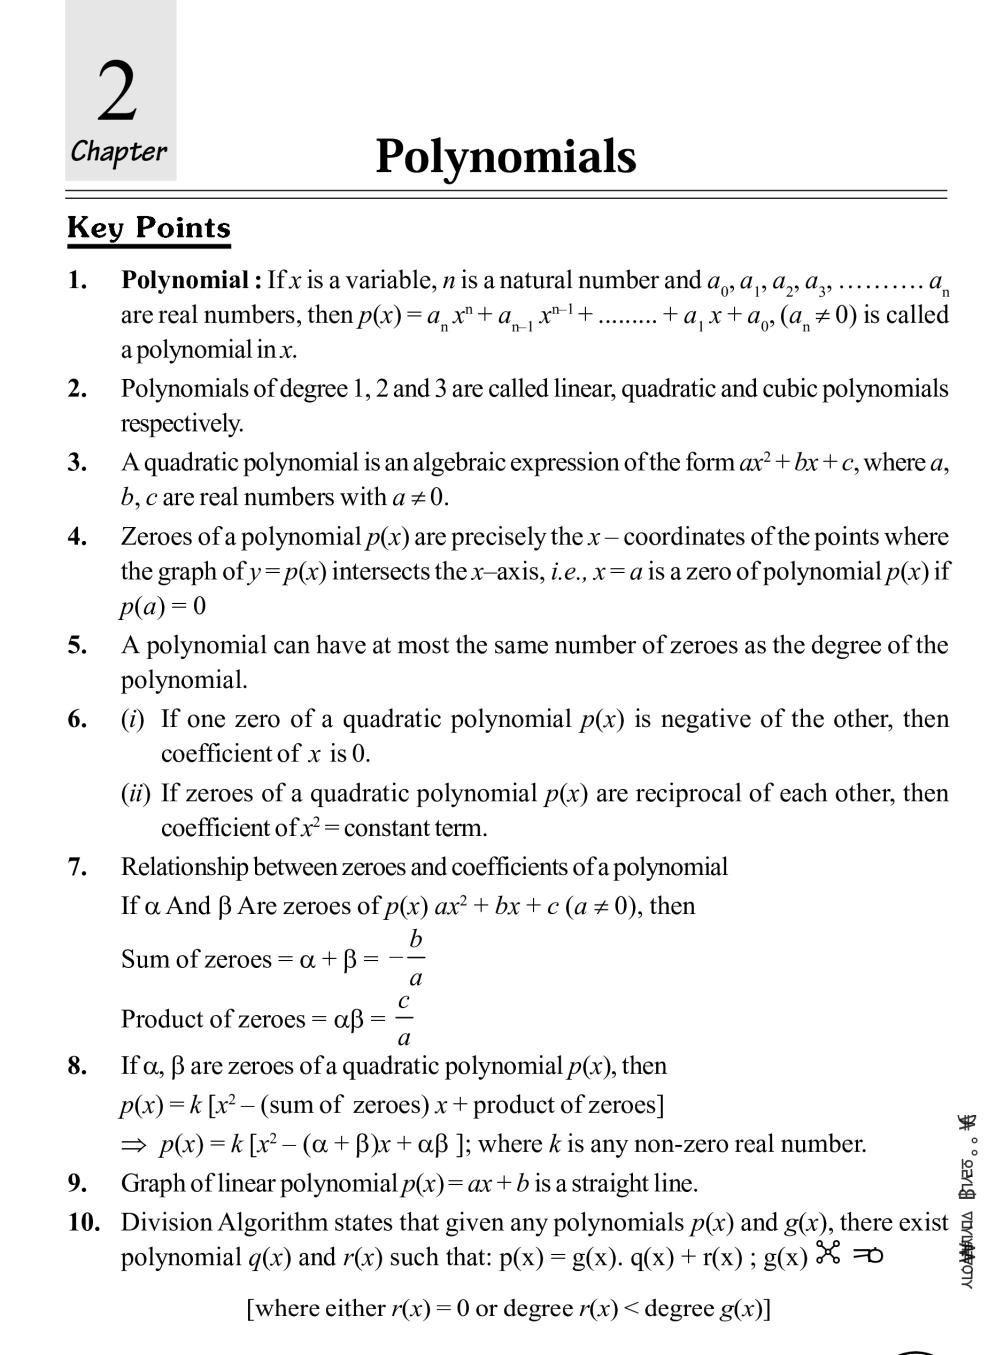 Class 10 Maths Notes For Polynomials In 2021 Math Notes Polynomials Studying Math [ 1355 x 996 Pixel ]